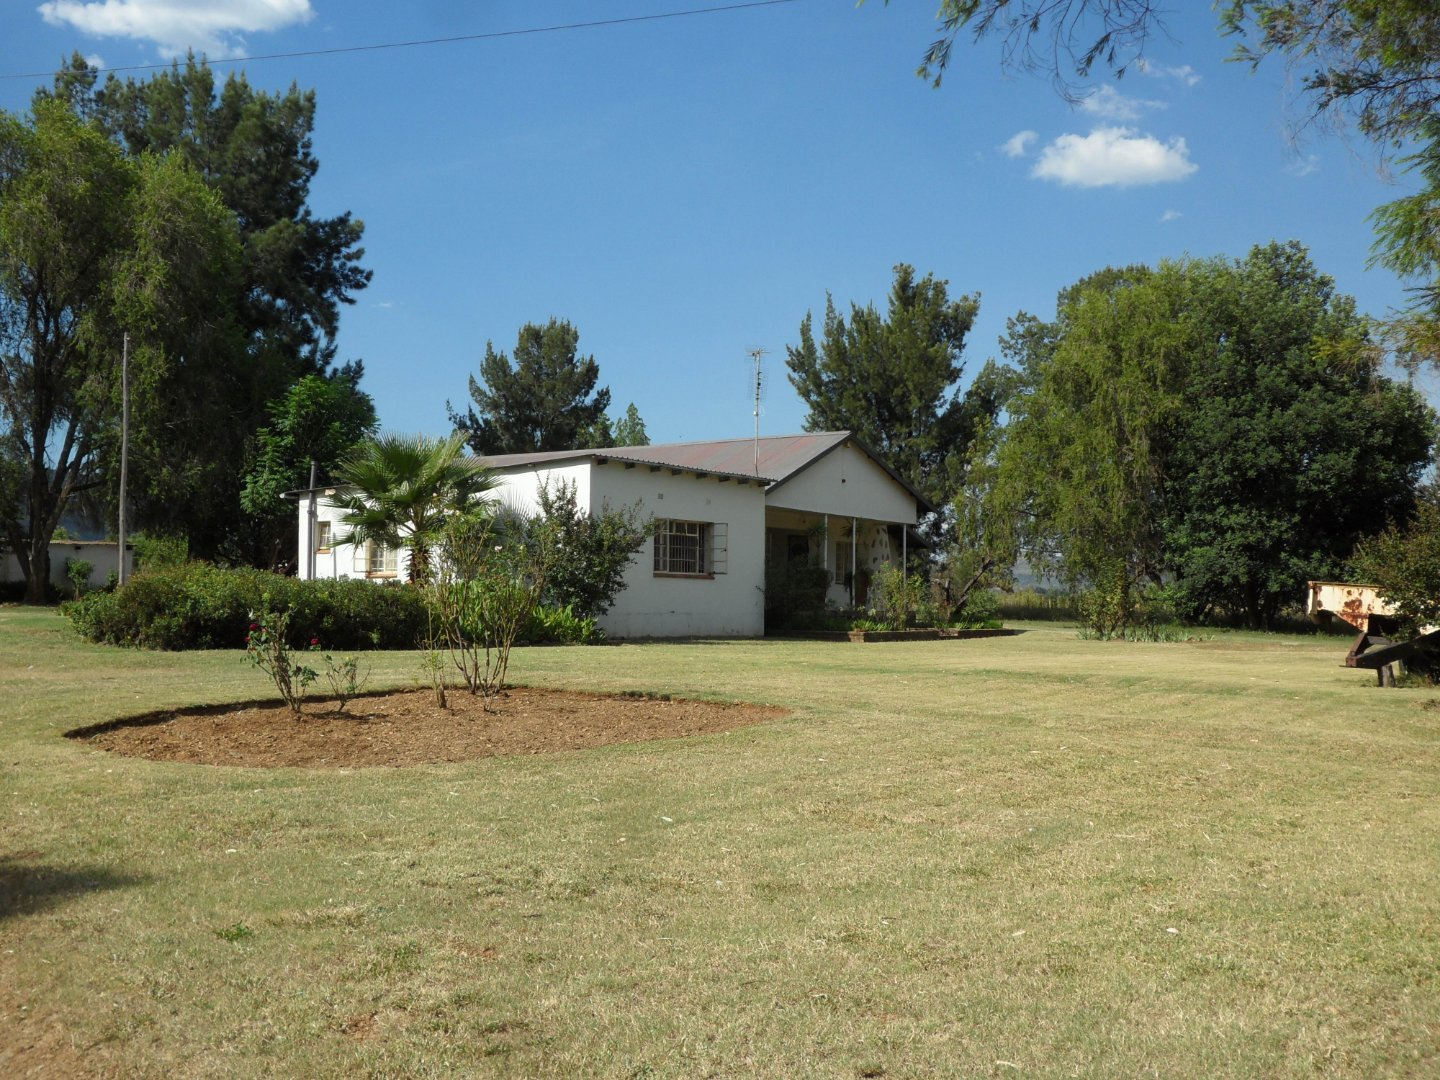 Kameeldrift West property for sale. Ref No: 13755943. Picture no 33